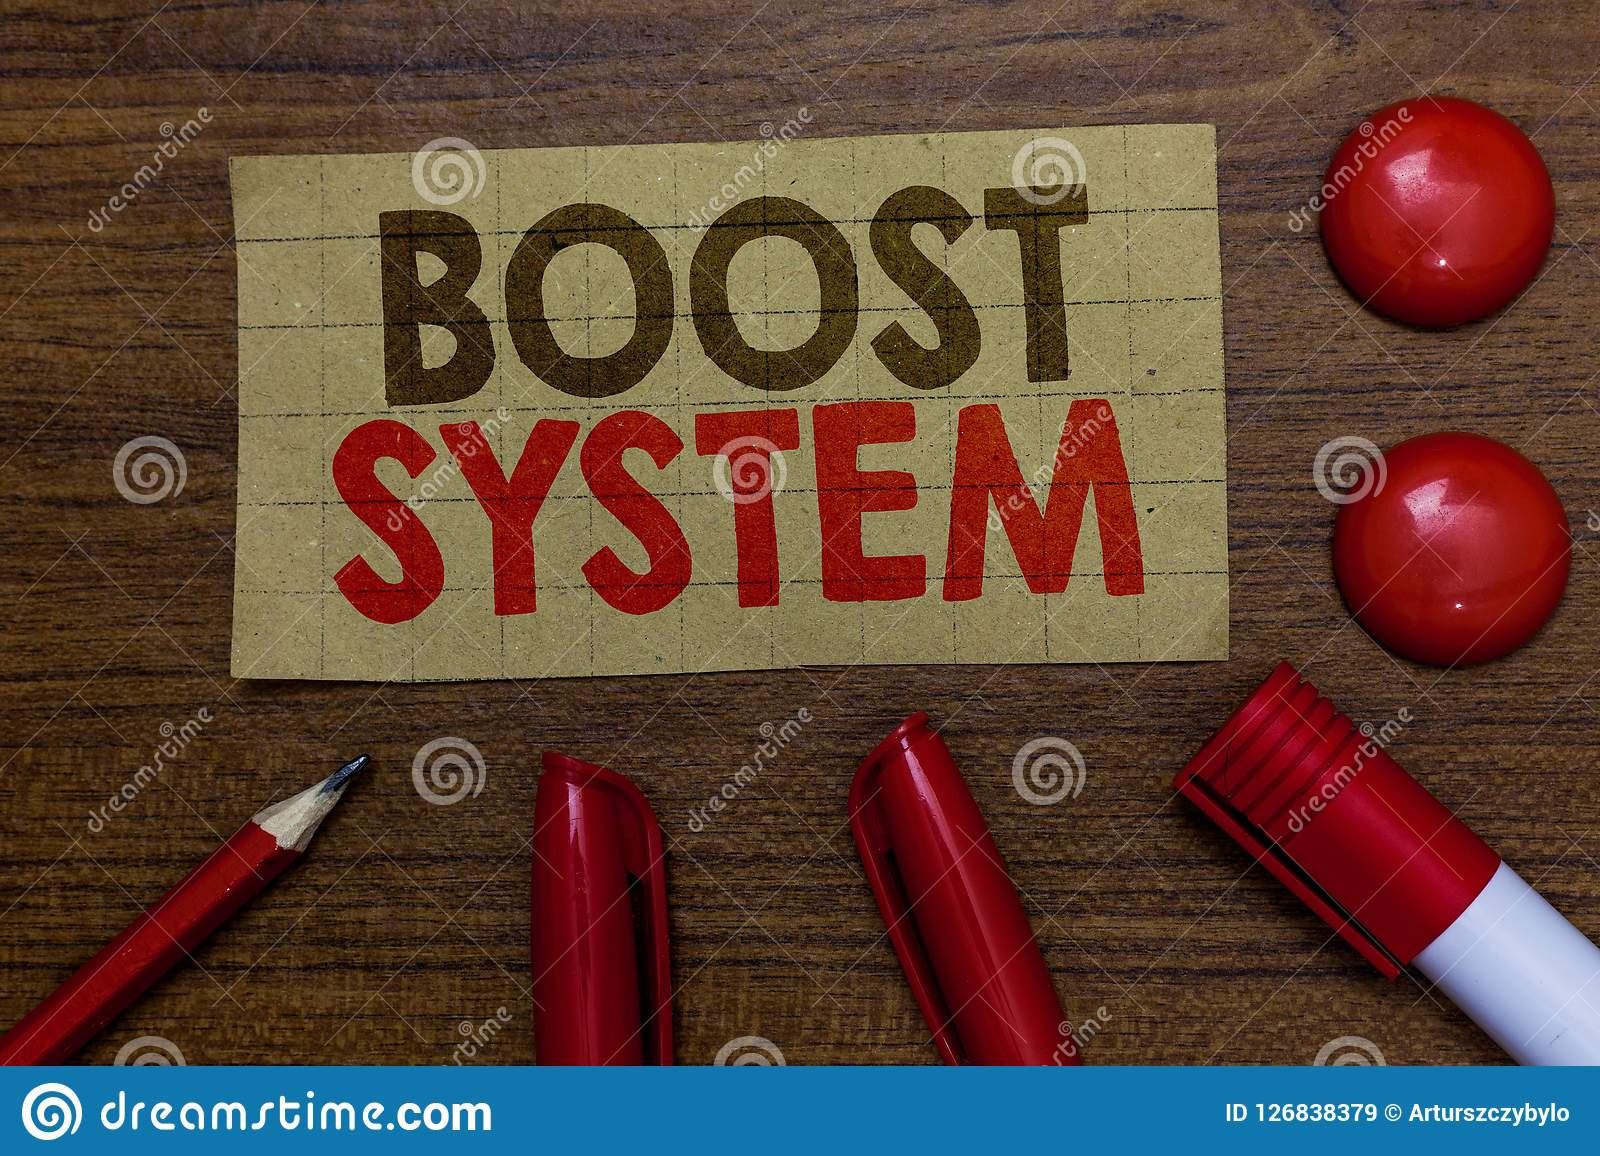 what is the meaning of boost